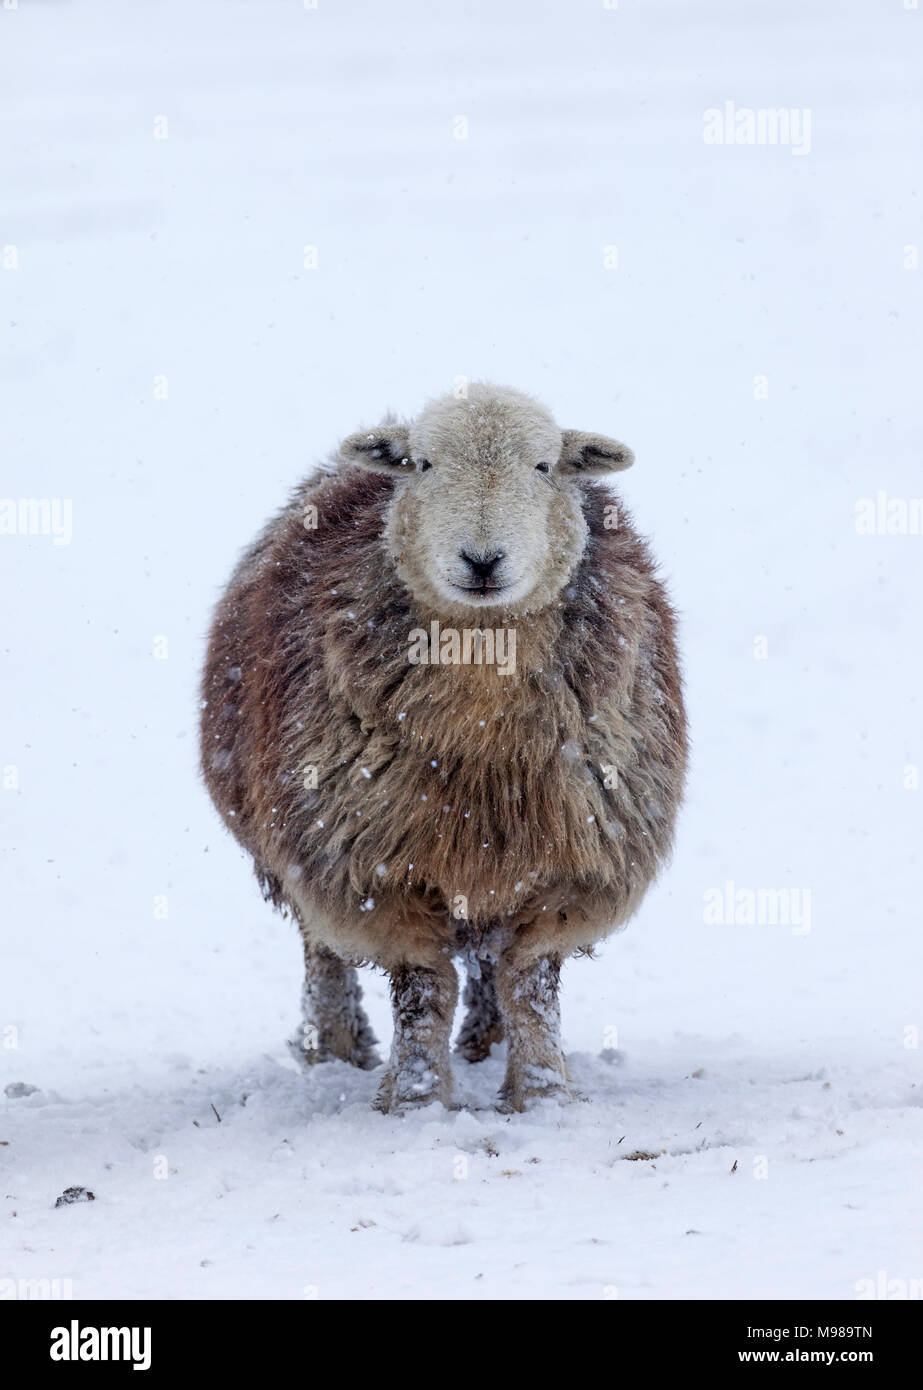 Herdwick Sheep and Falling Snow, UK - Stock Image